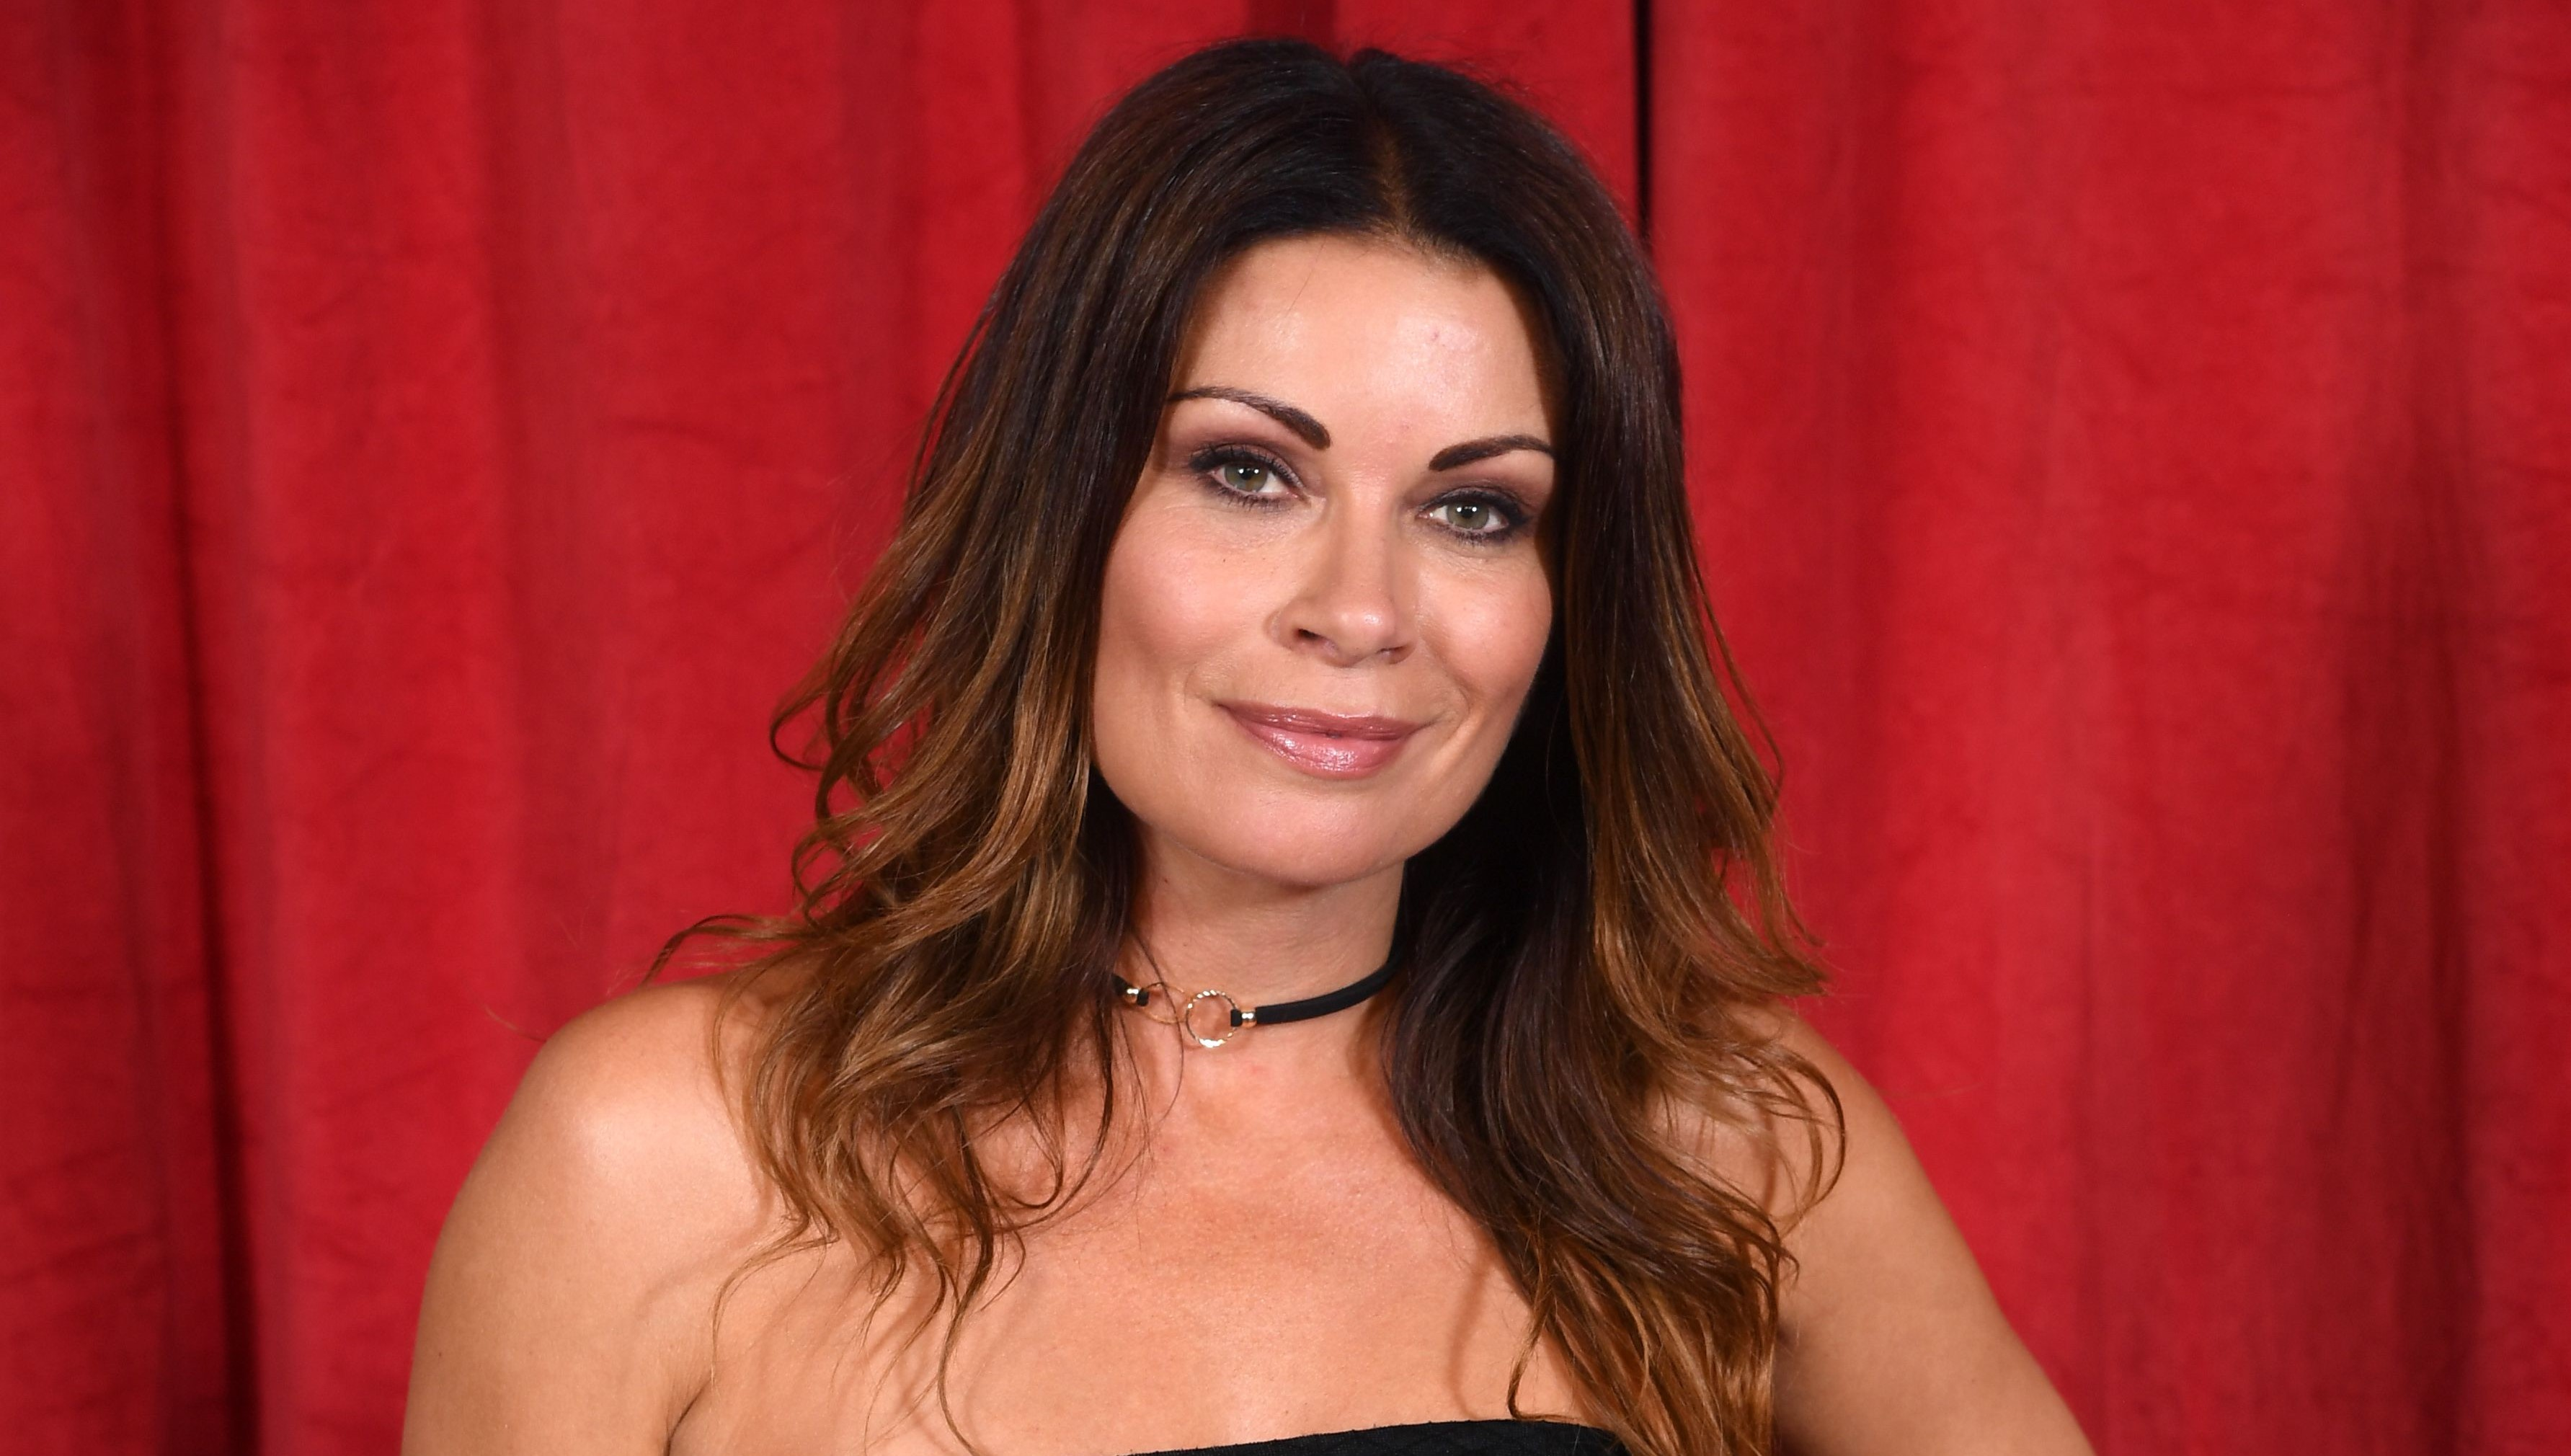 Corrie's Alison King 'engaged' to long-term partner